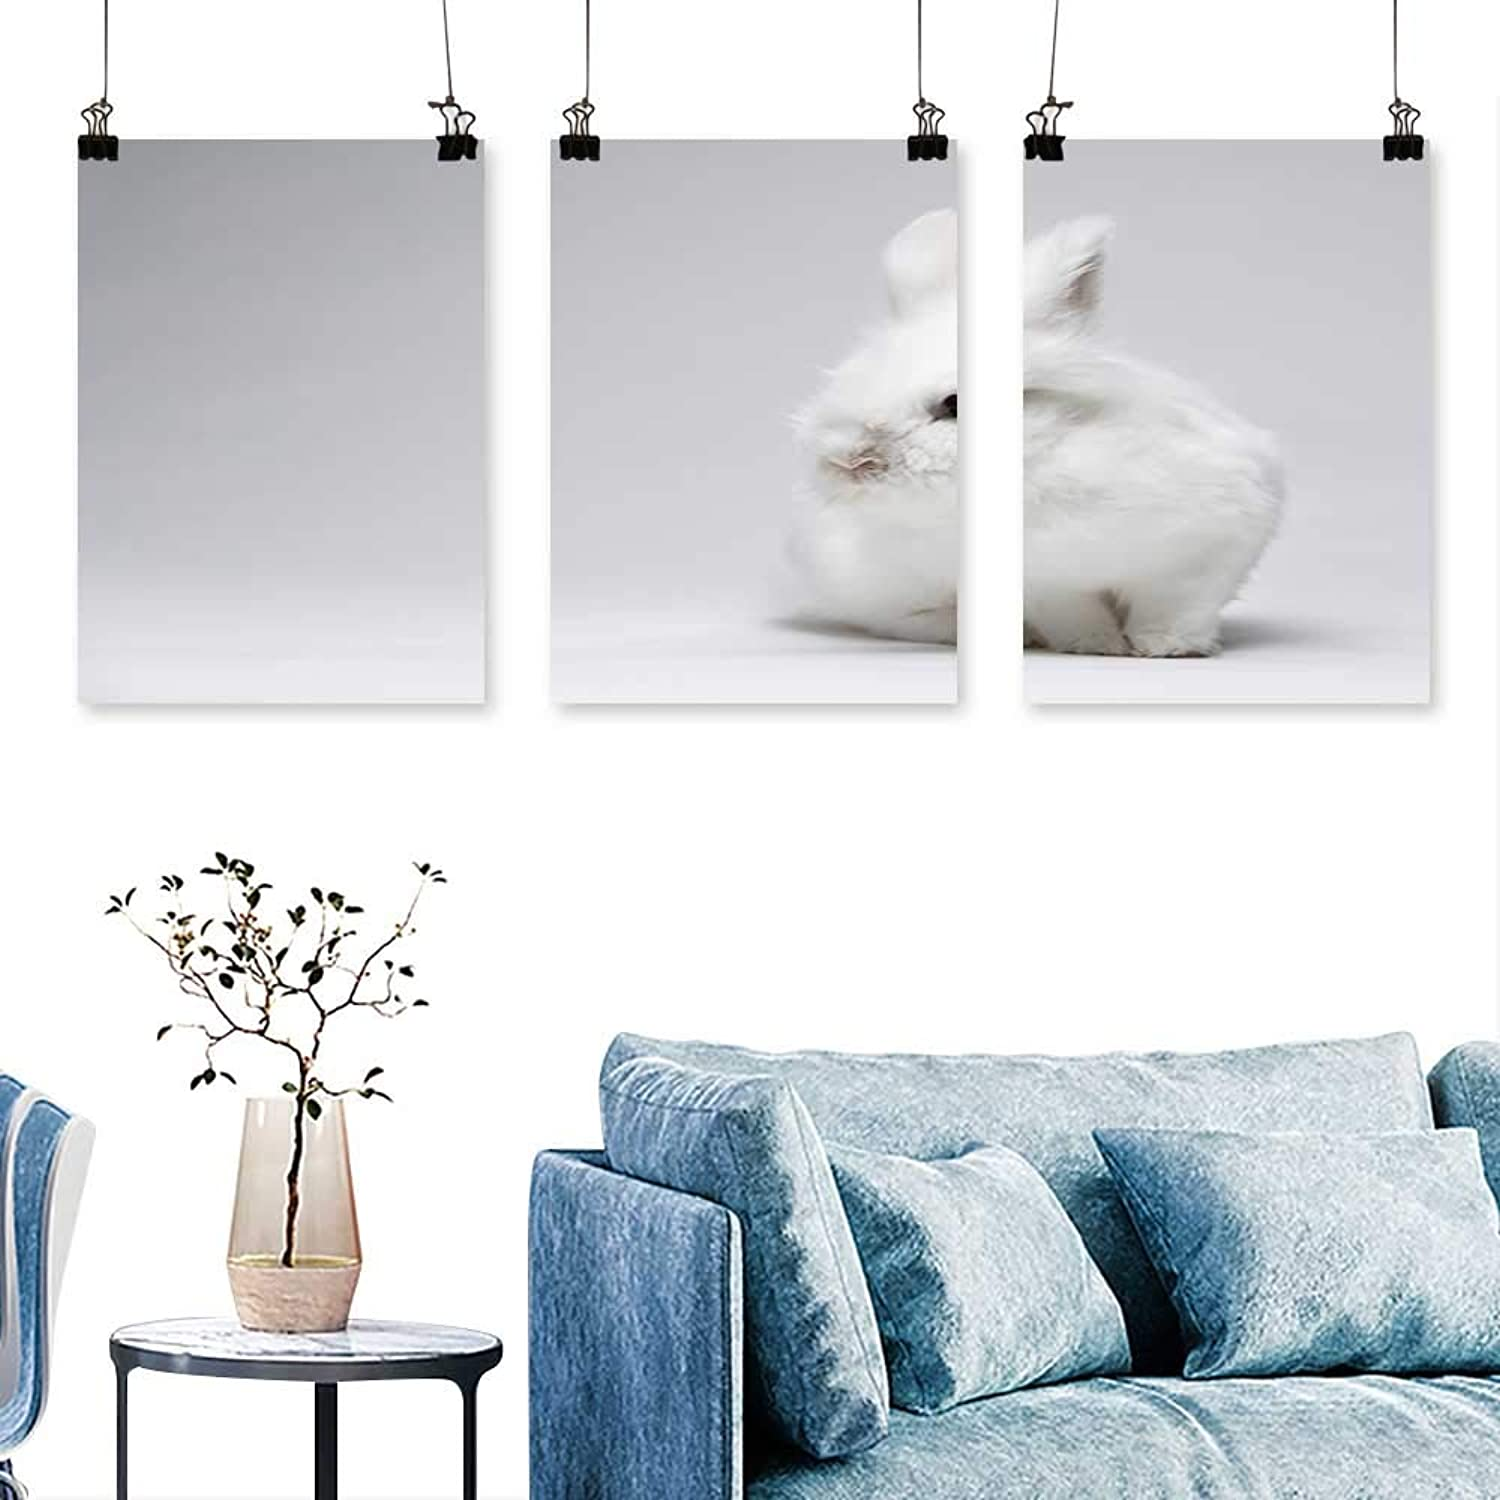 SCOCICI1588 3 Panels Triptych A Small White Rabbit on a White Screen for Home Modern Decoration No Frame 30 INCH X 60 INCH X 3PCS